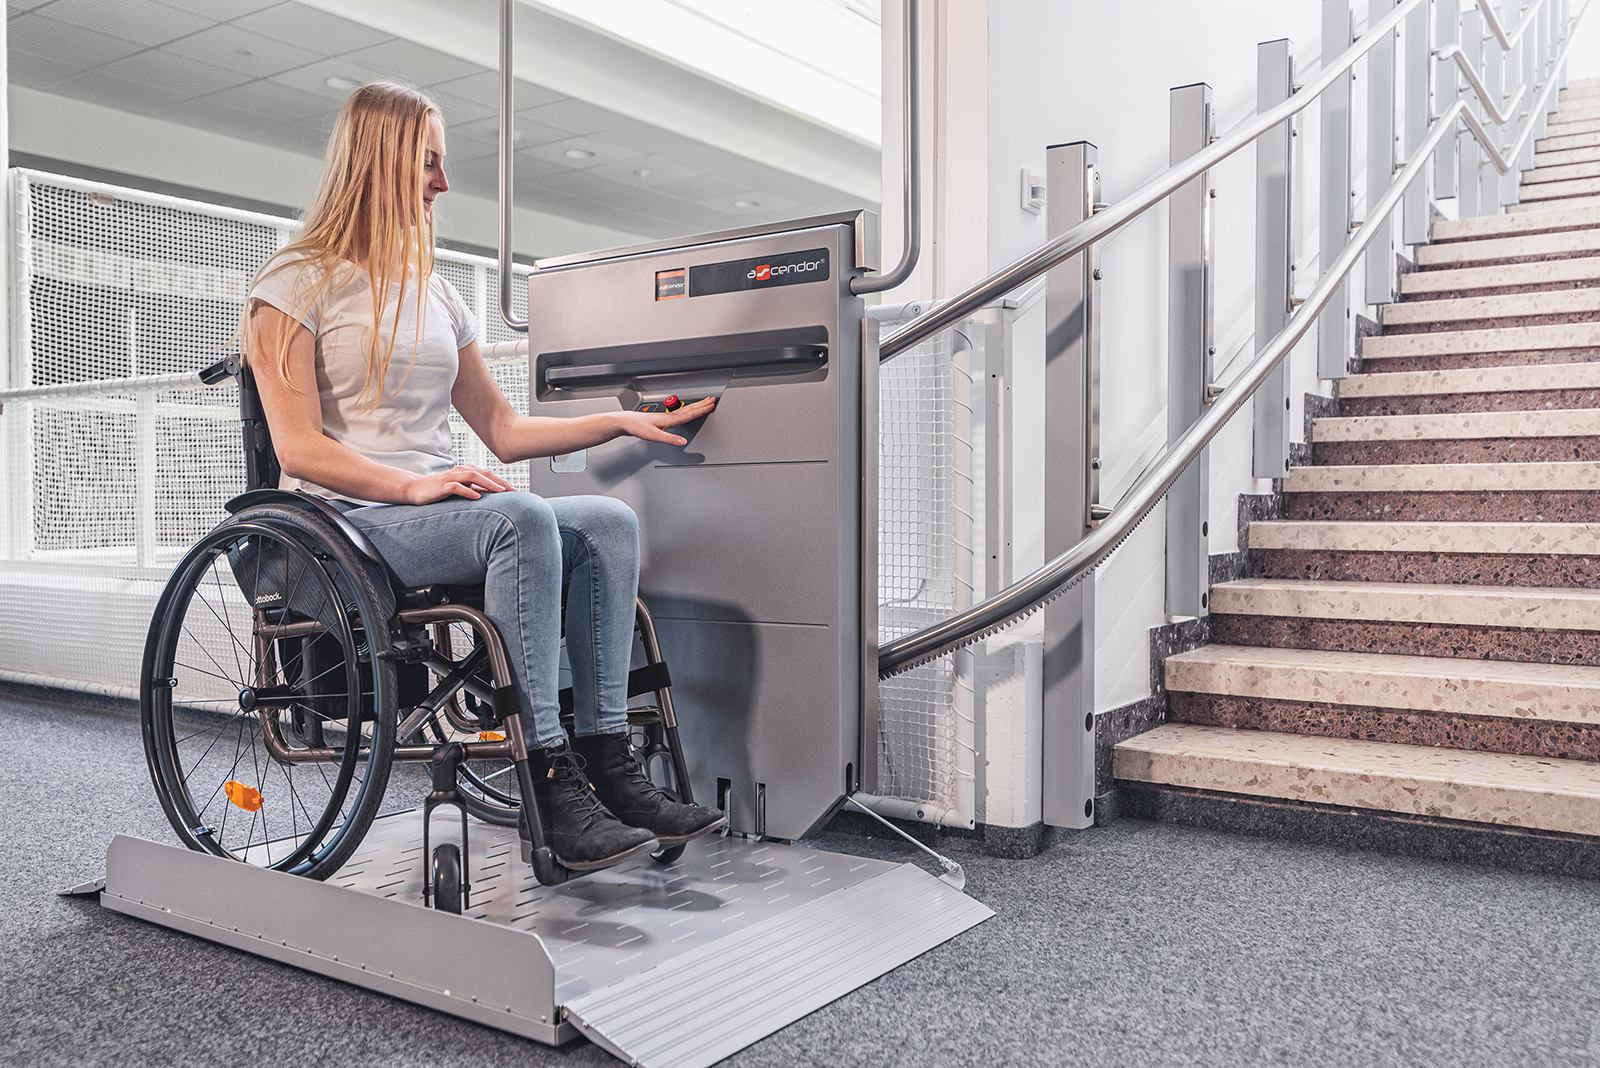 Woman in wheelchair uses an Ascendor Platform Stair Lift